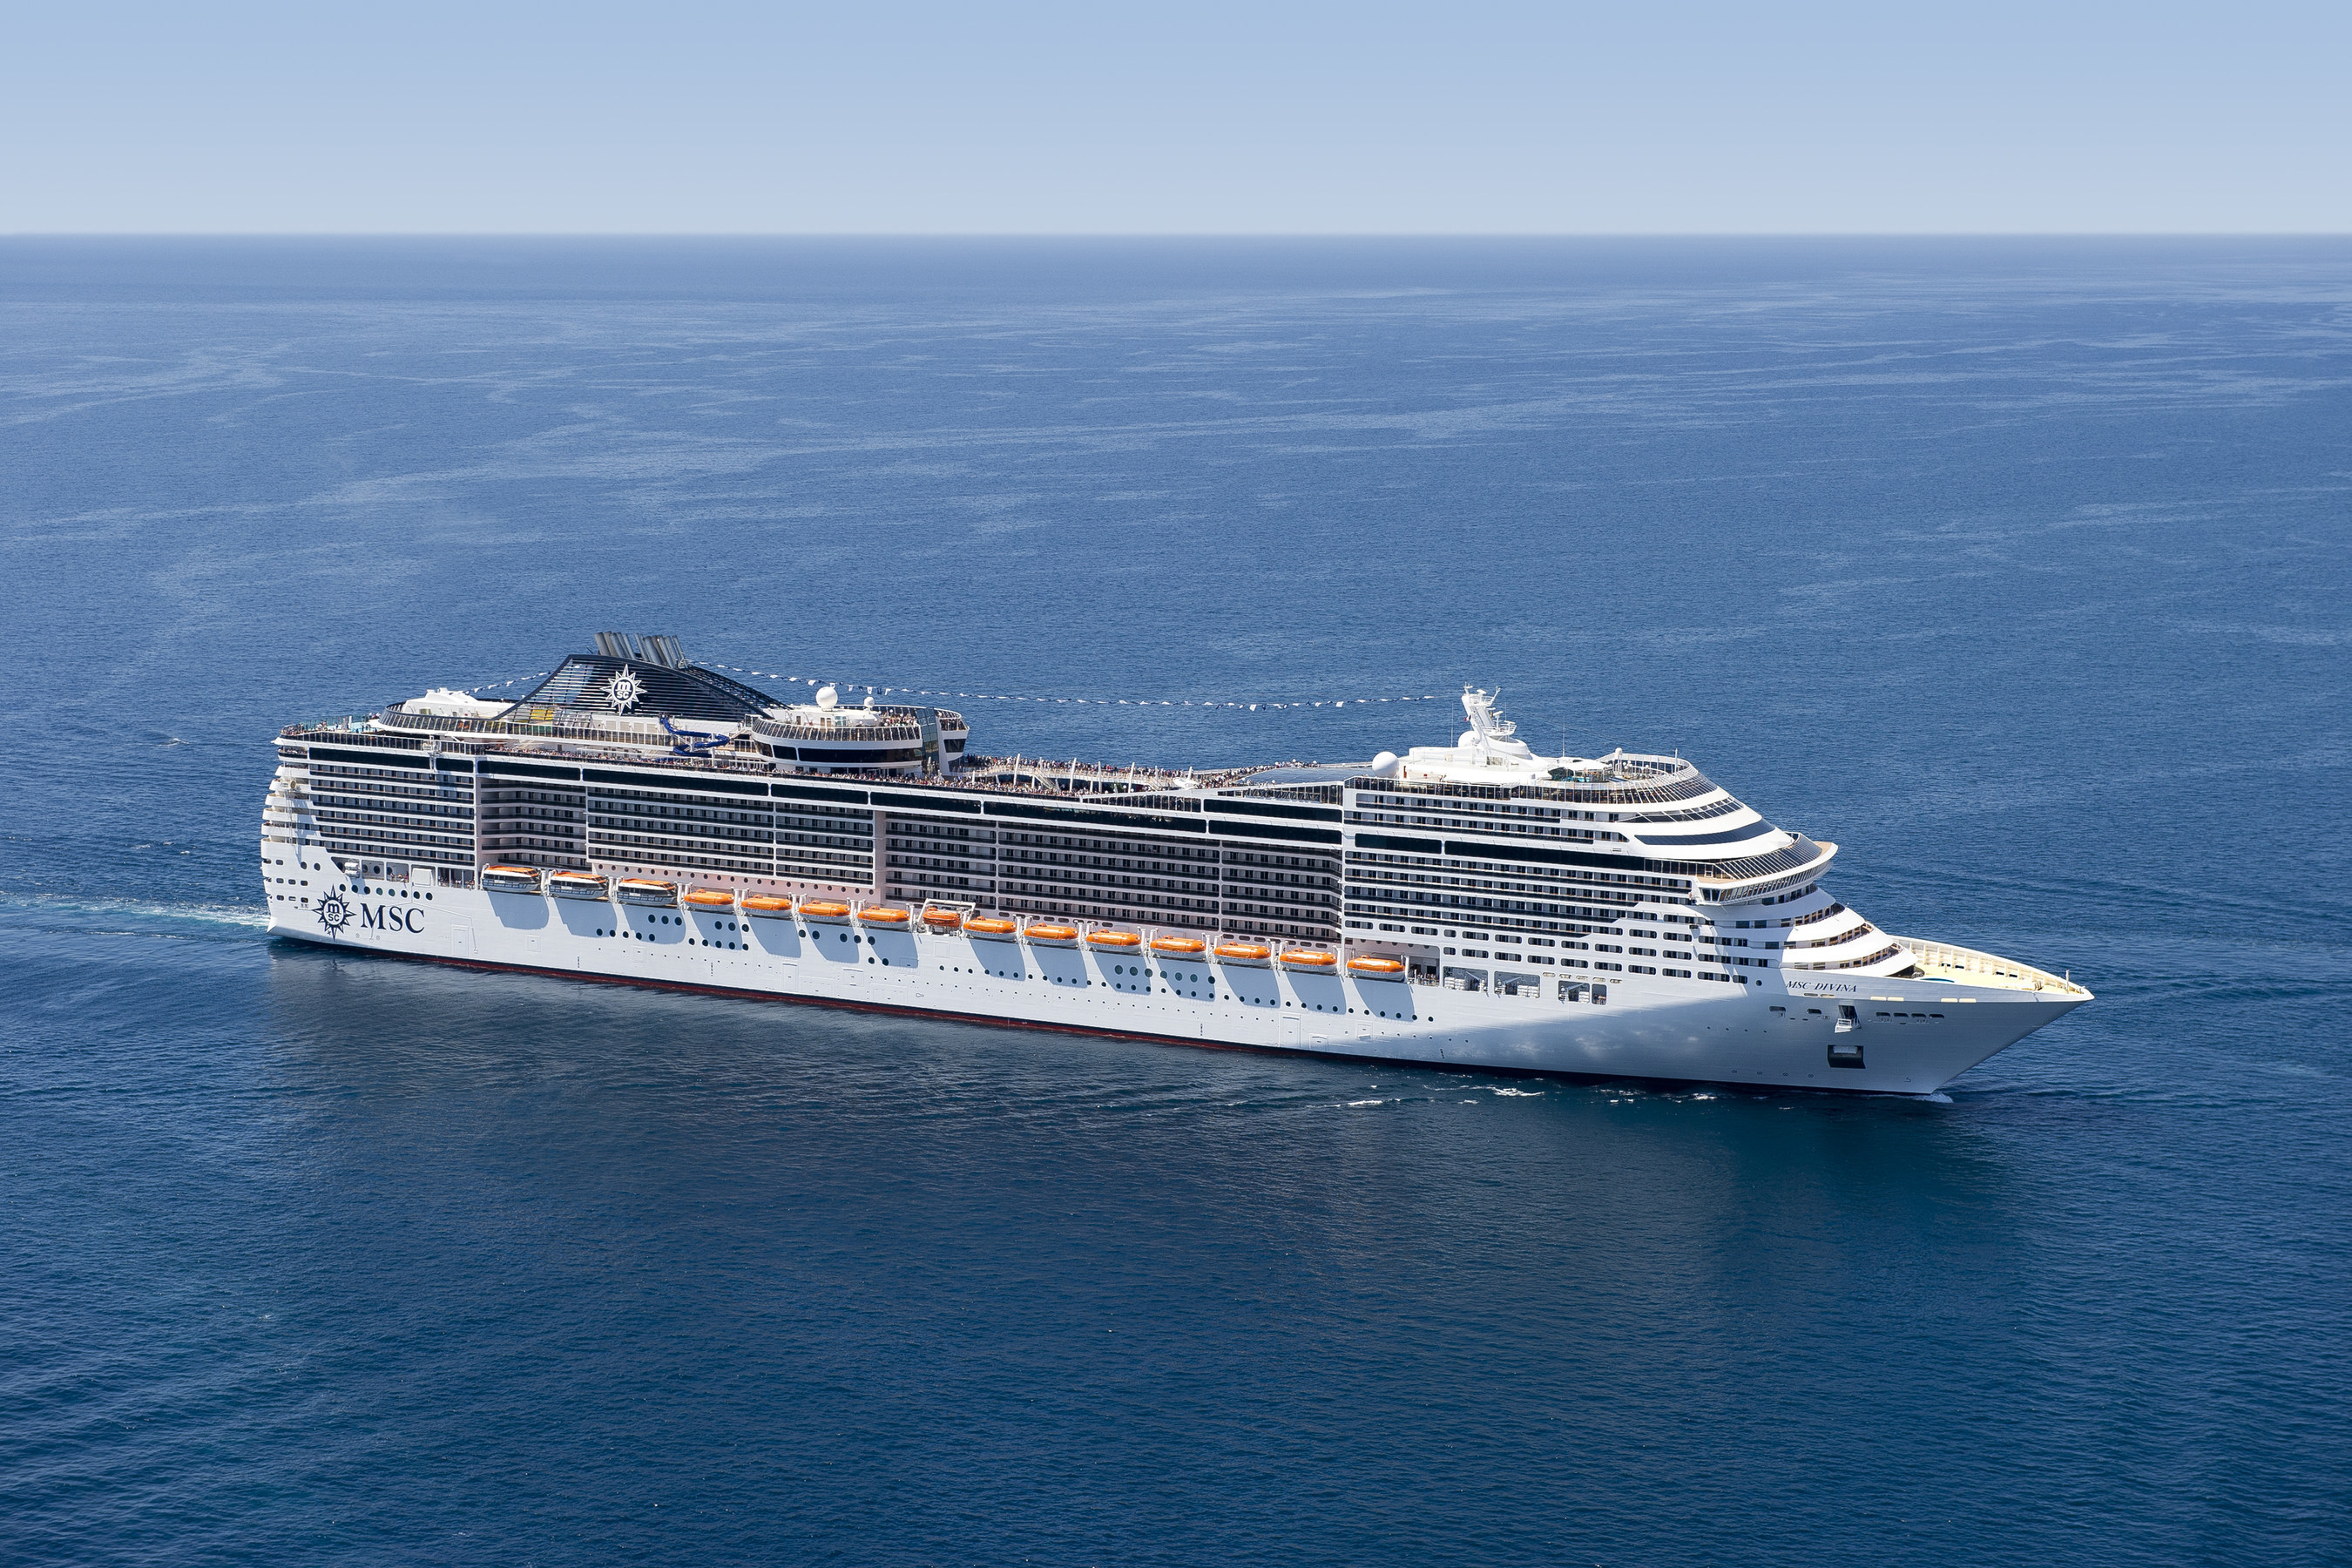 The beautiful and ultramodern MSC Divina sails year-round from Miami to the Caribbean